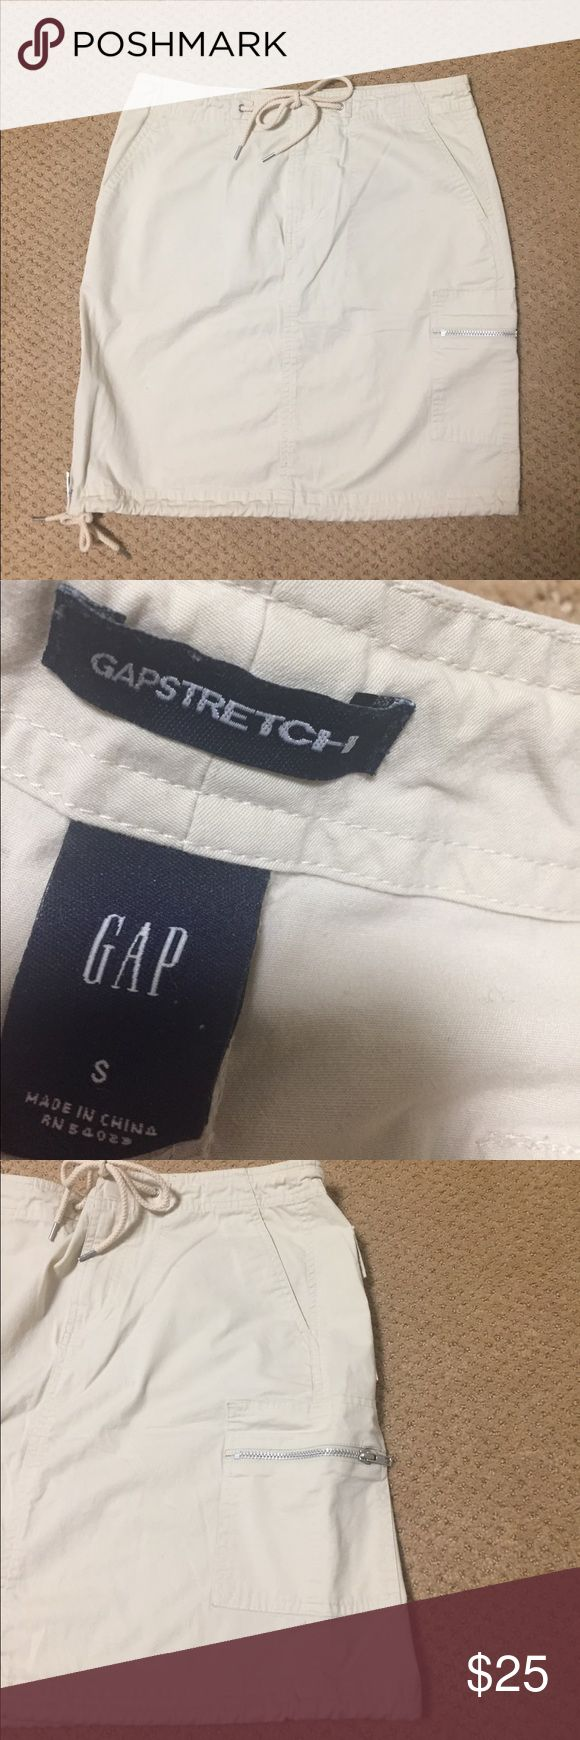 Gap beige skirt Size S. Made of 97% cotton/3% Lycra. Waist 15 inches across. Length 18 inches. Great condition. Multiple pockets. GAP Skirts